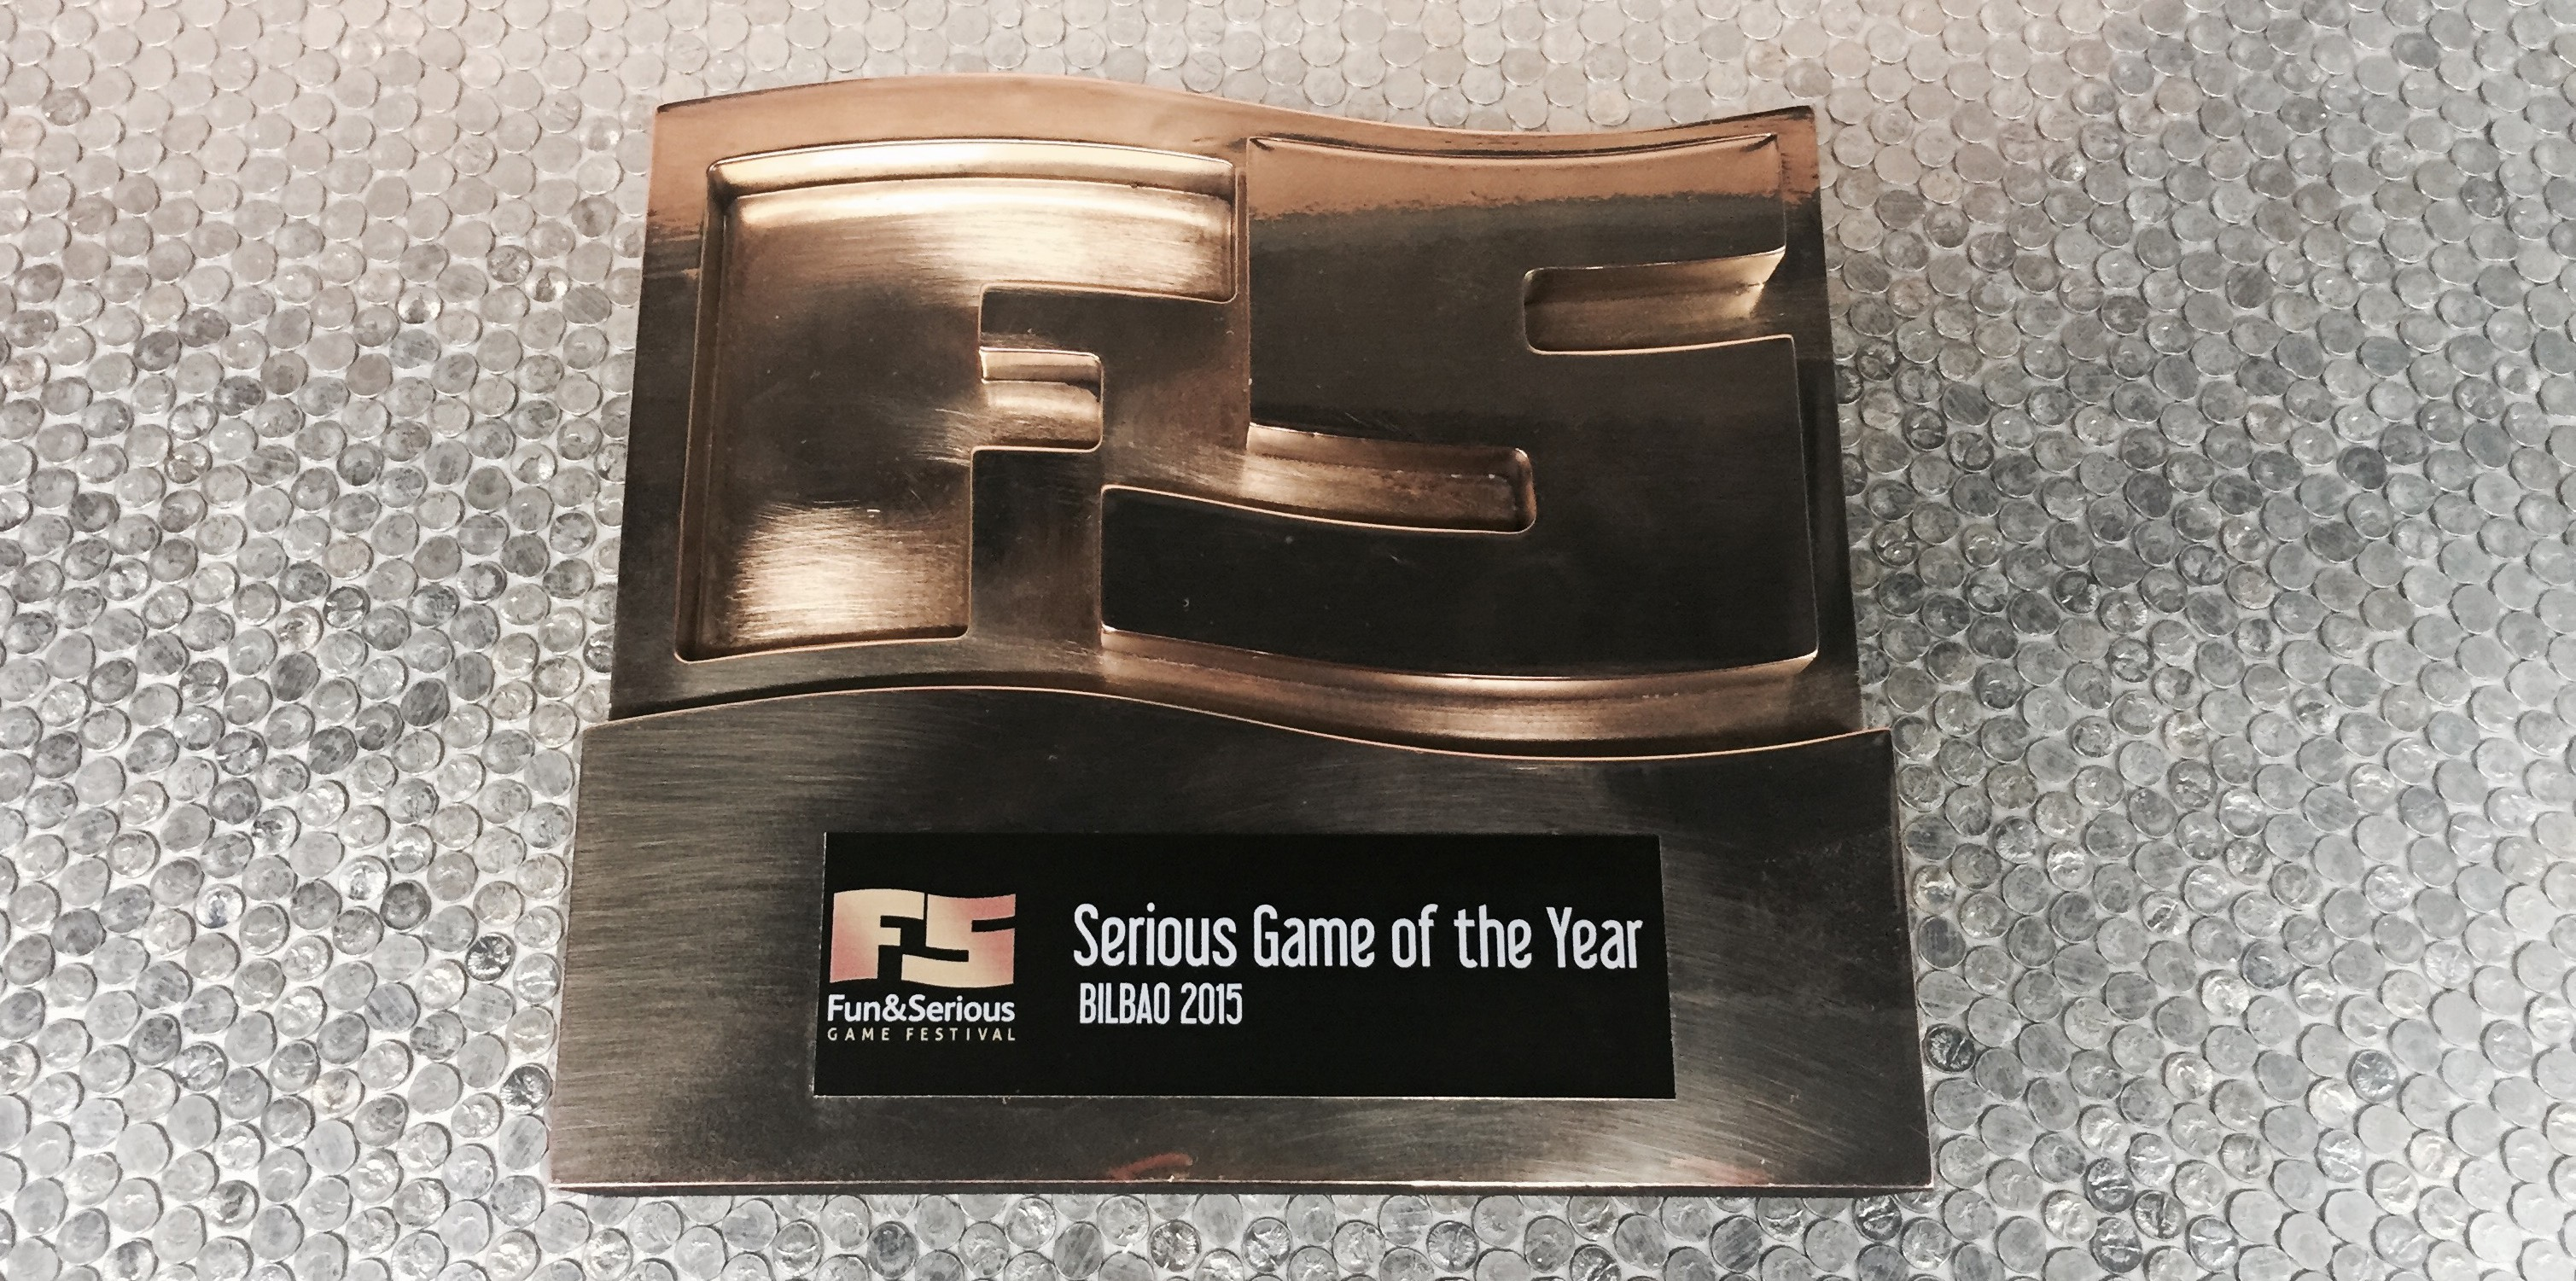 Fun & Serious Game Festival introduces Titanium, the award for best video games of the year